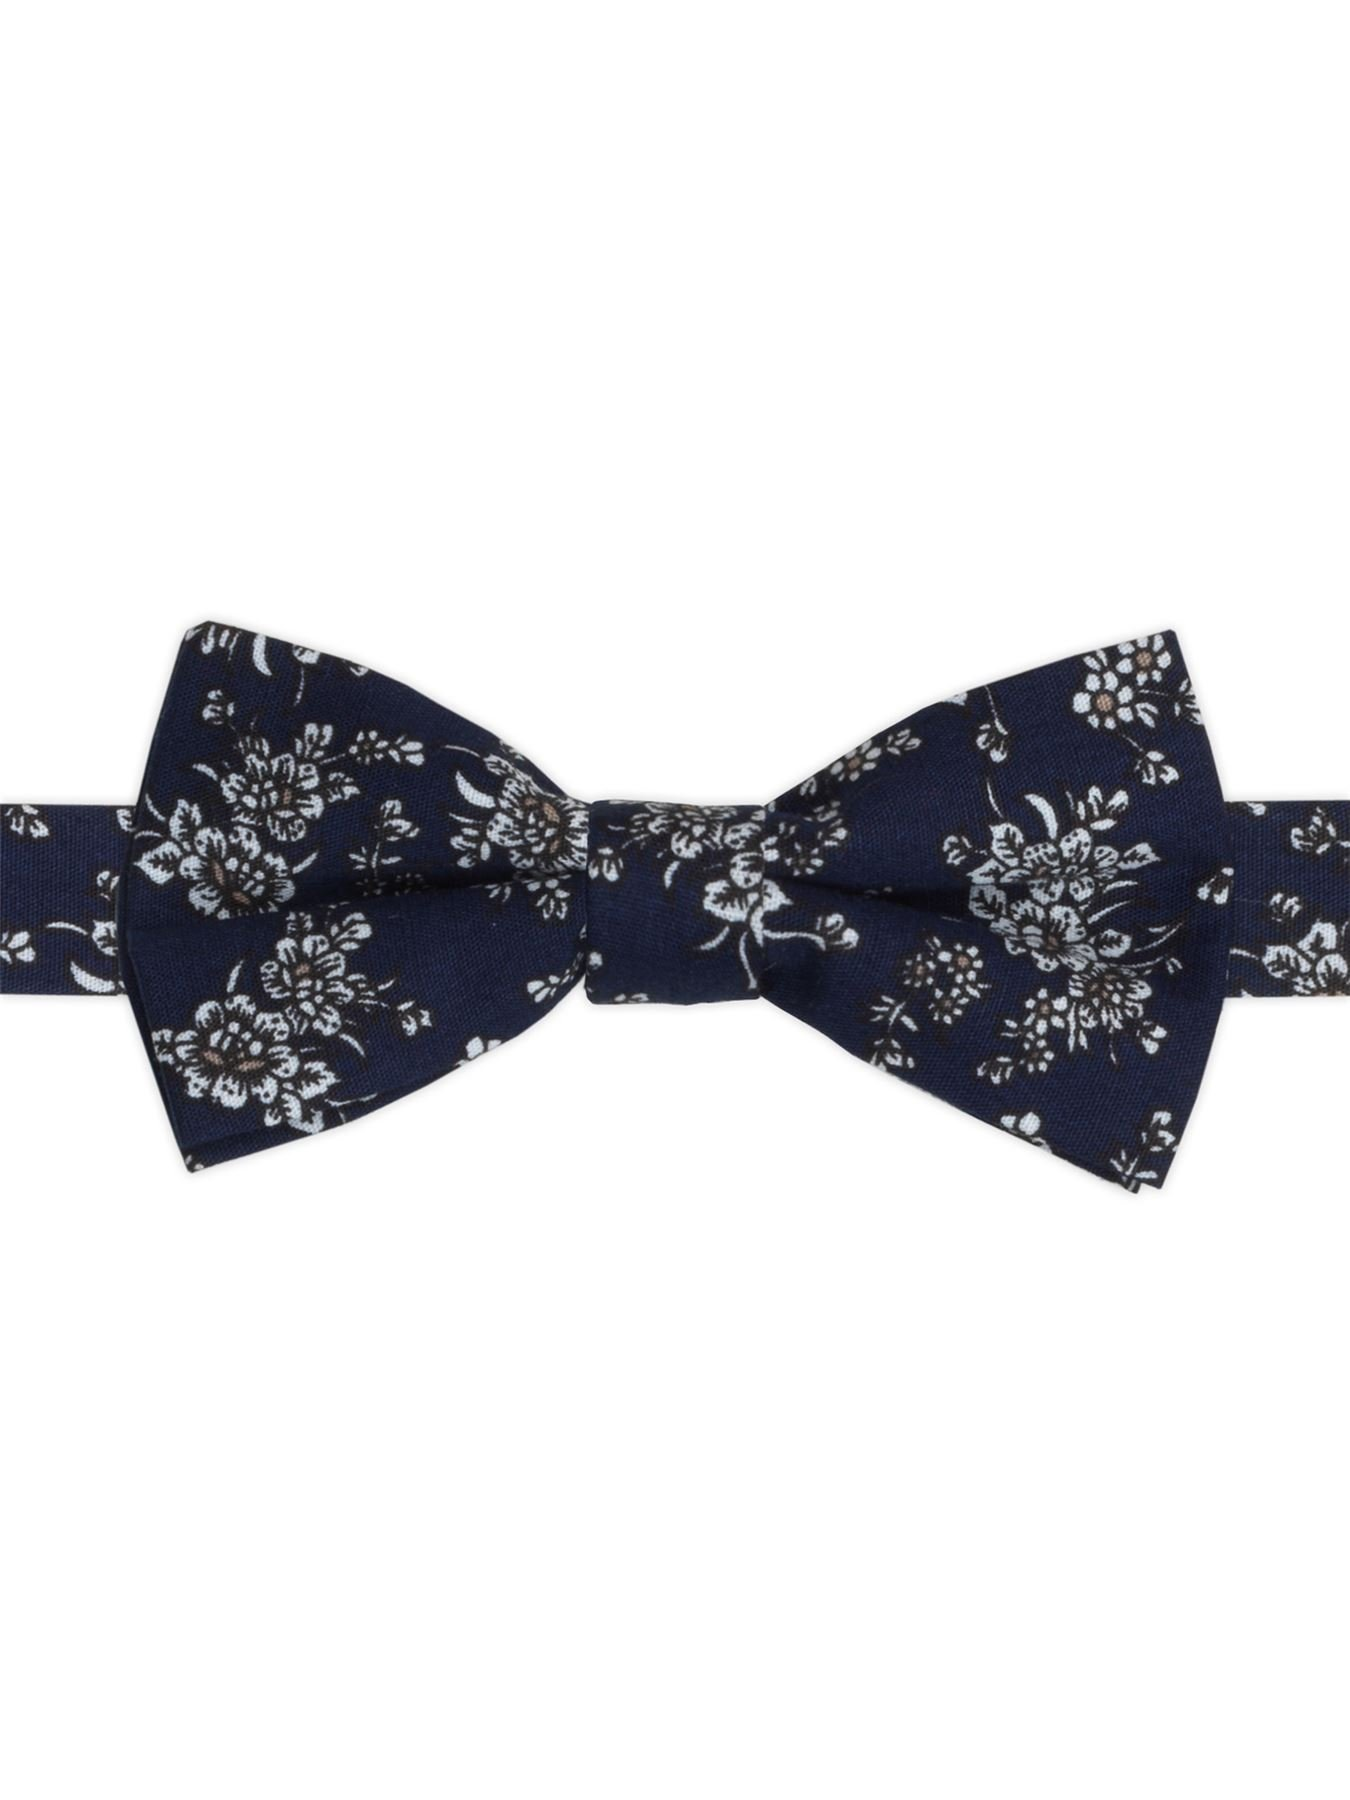 Paisley of London, Boys blue bow tie, Boys banded bow tie, Floral pattern